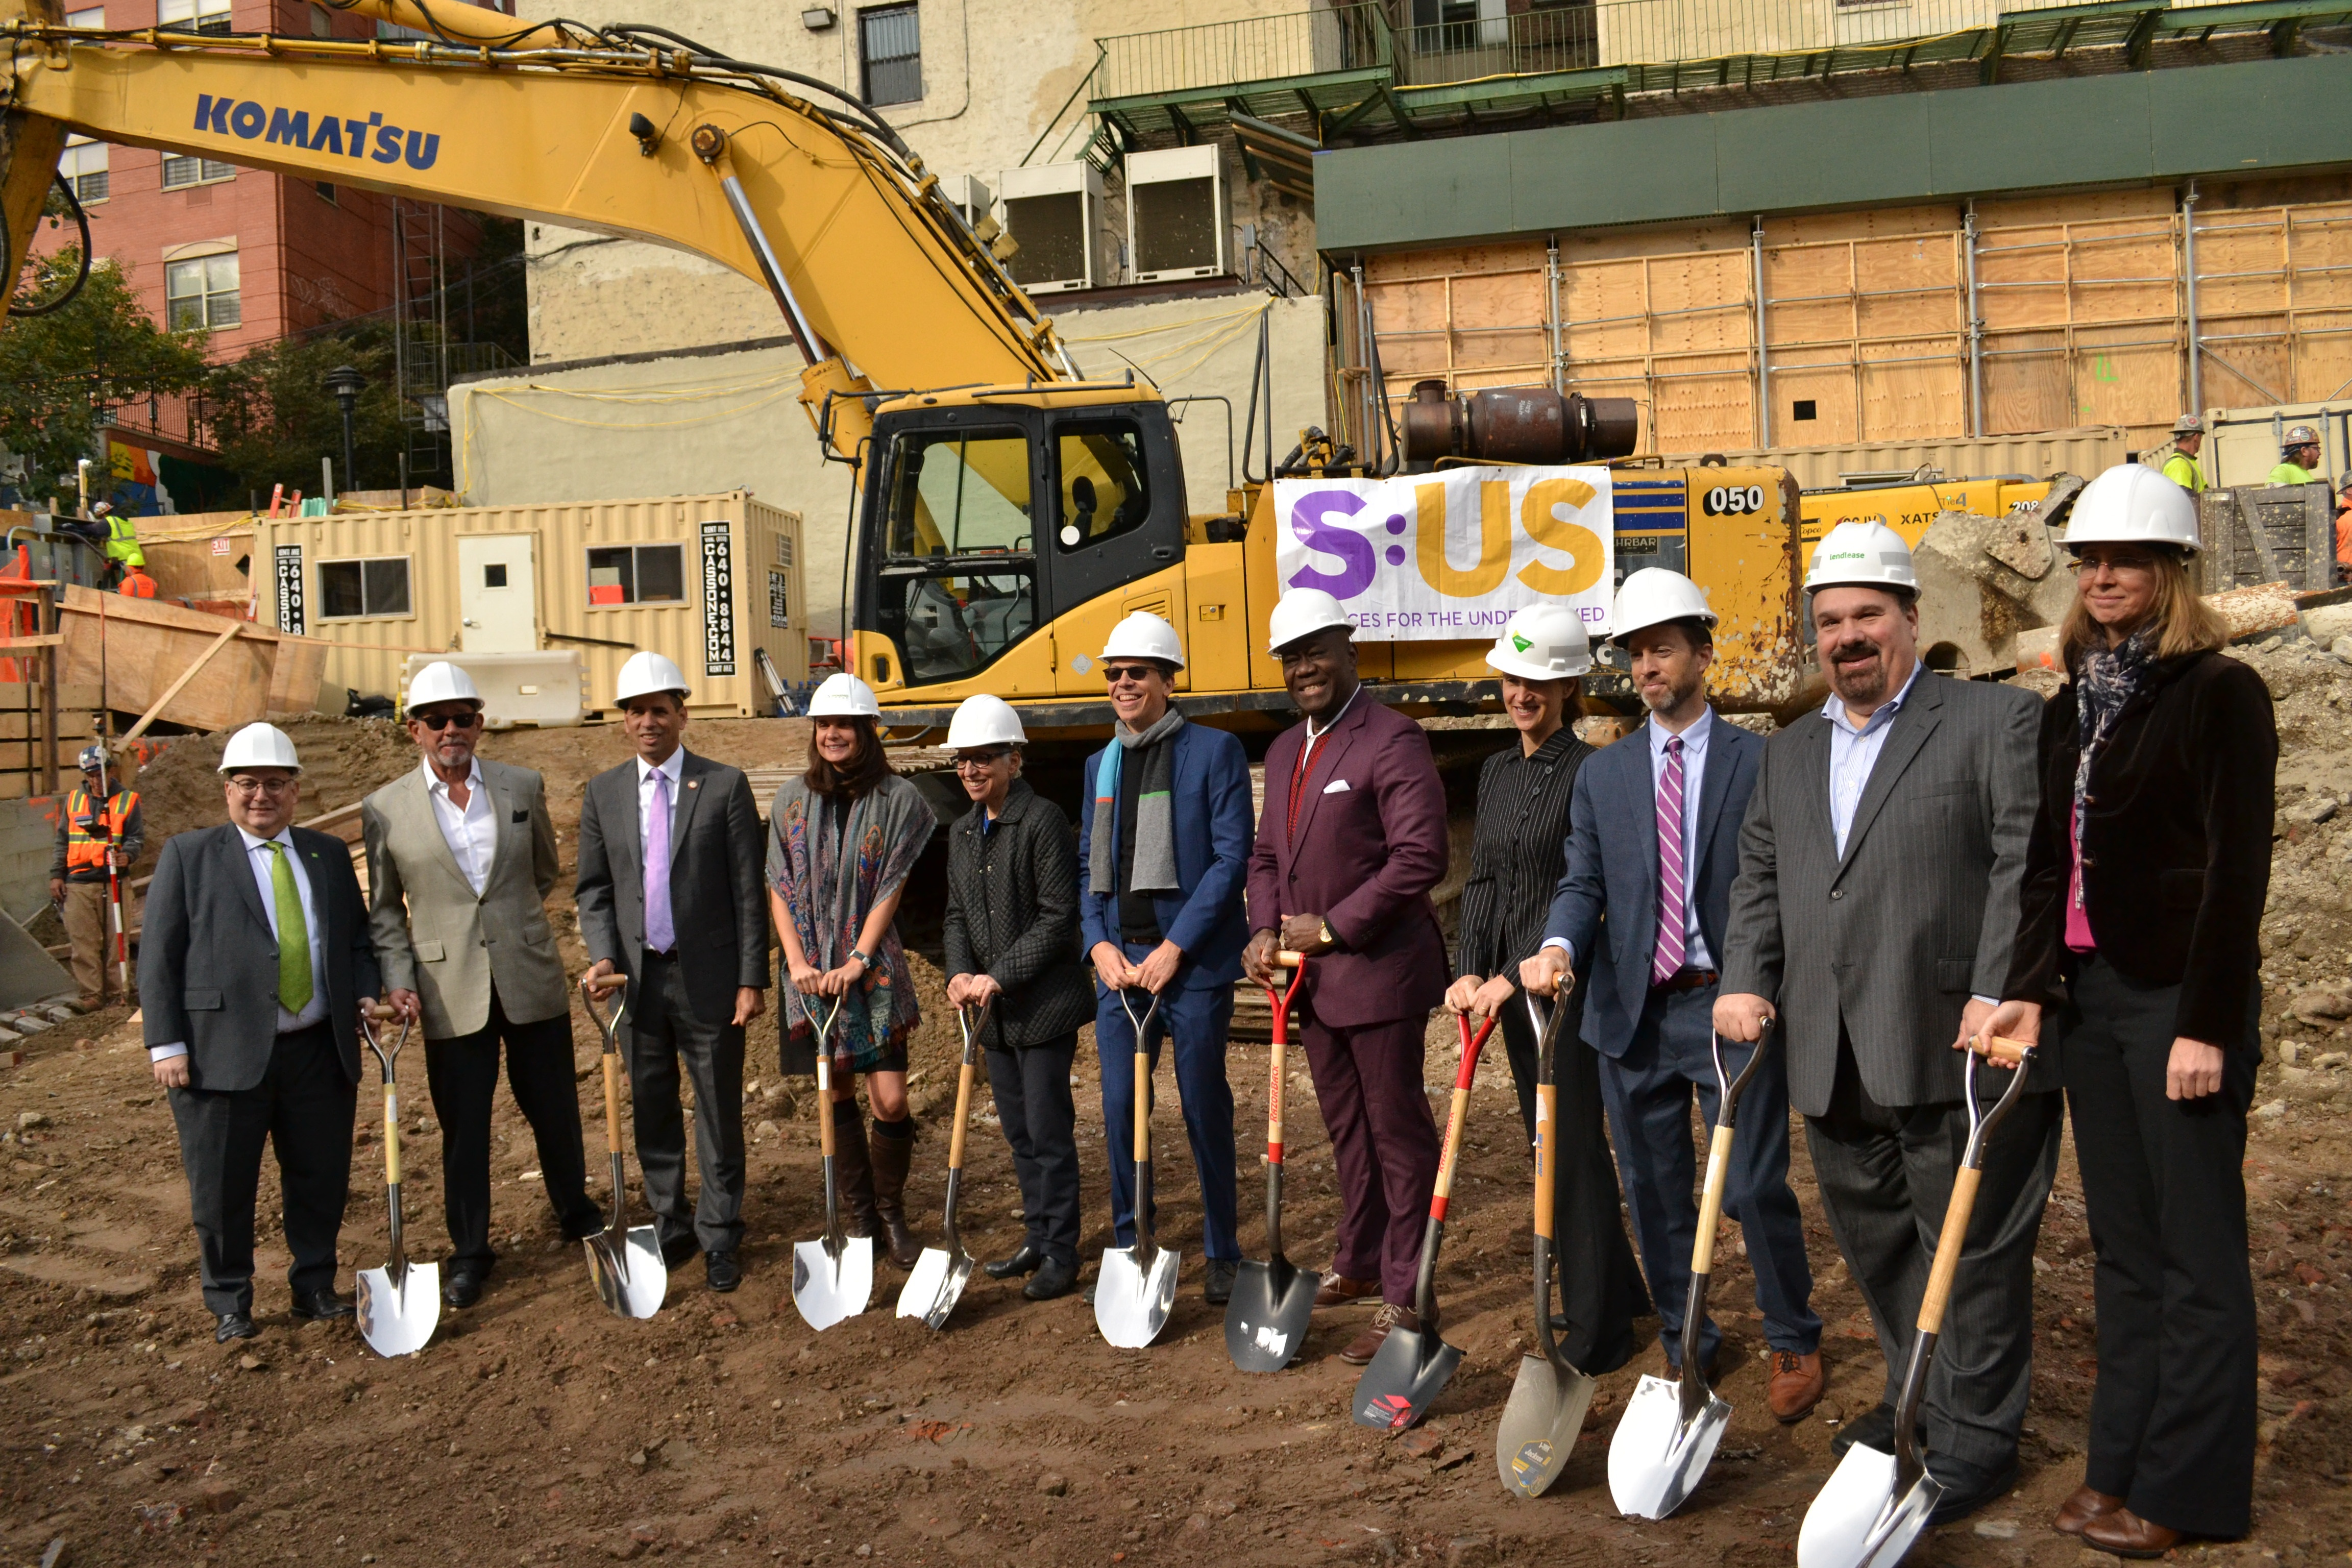 S:US and Bronx Pro Group break ground on Jerome Avenue Apartments; Marvel Architects designed the 175-unit project